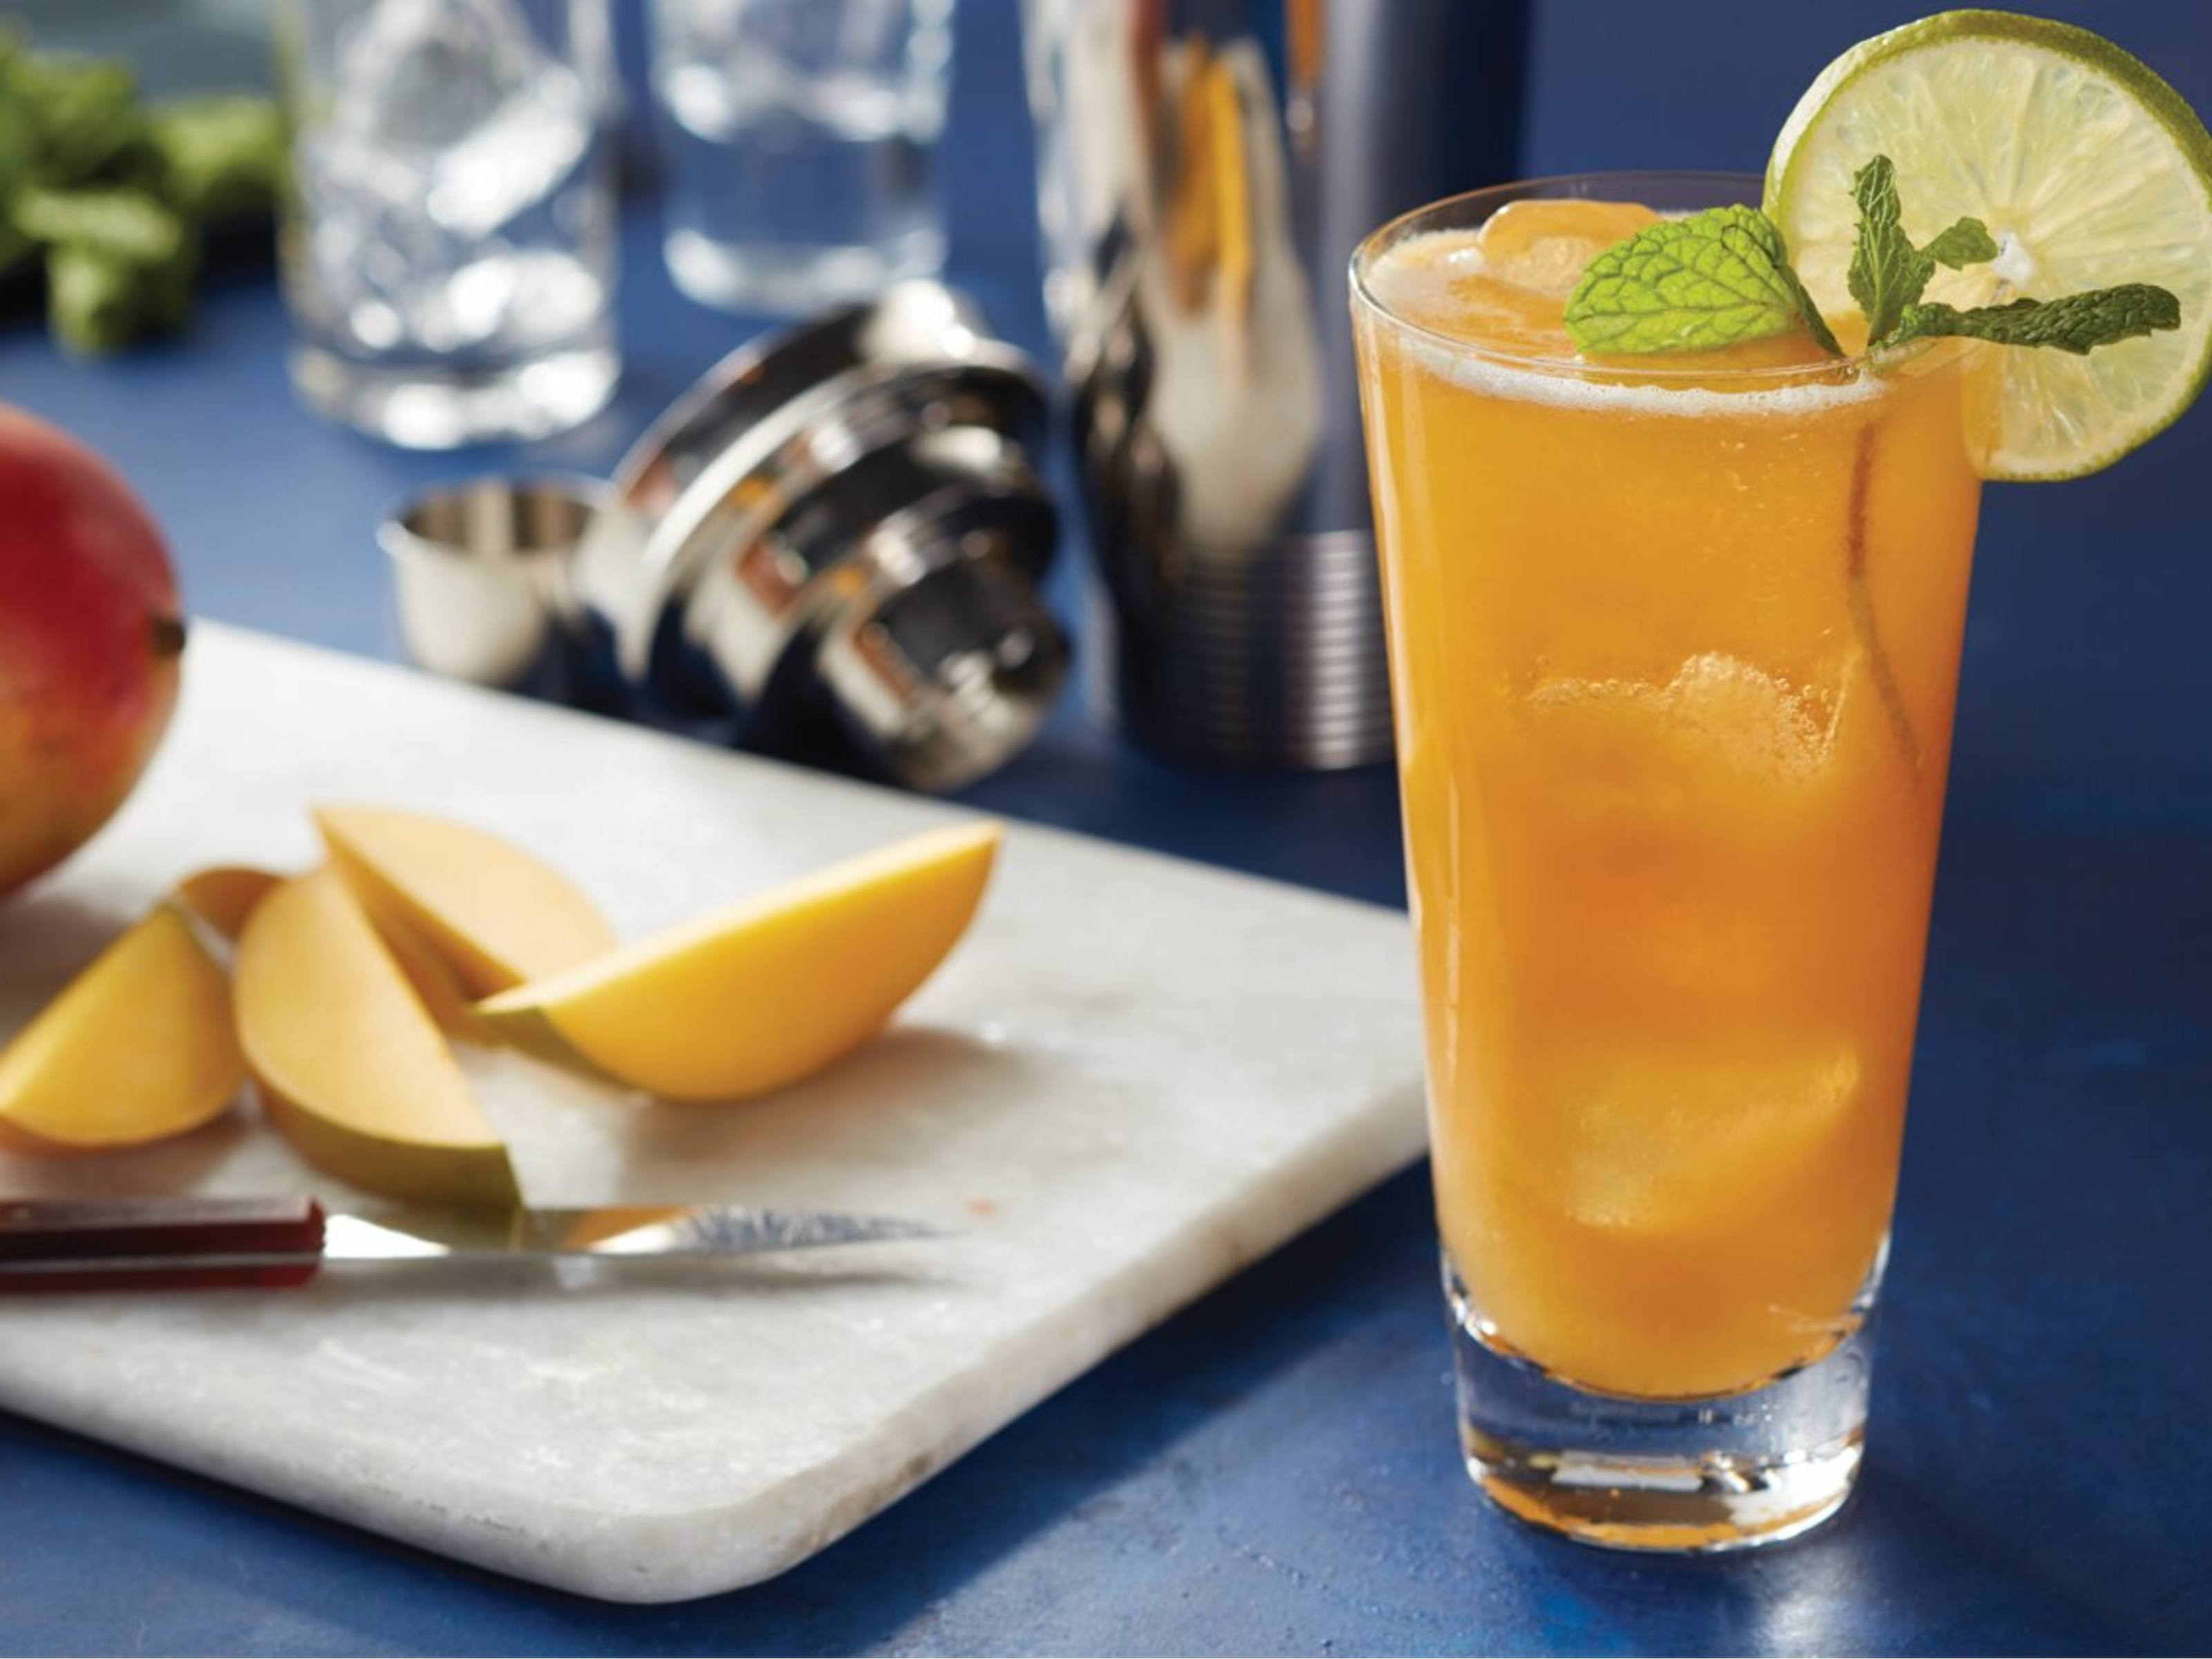 Lipton® Black Iced Tea Sparkling Mango Mocktail